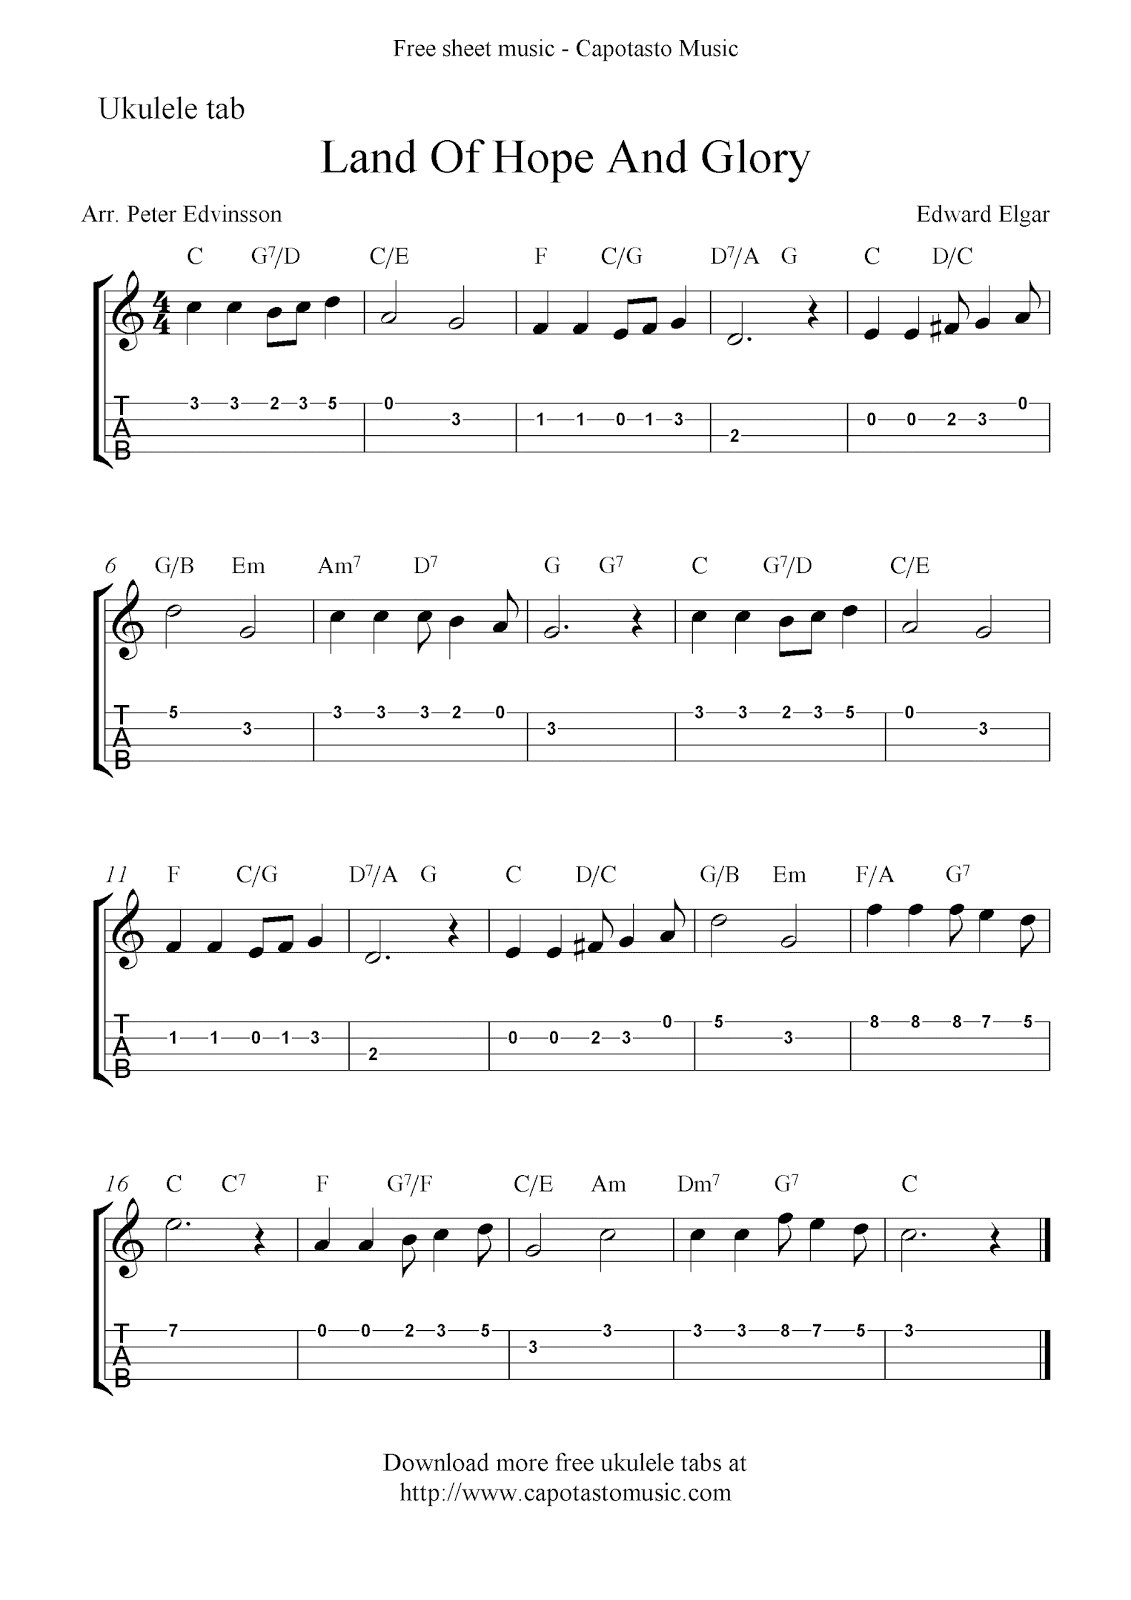 Land of hope and glory free ukulele tab sheet music for Pomp and circumstance